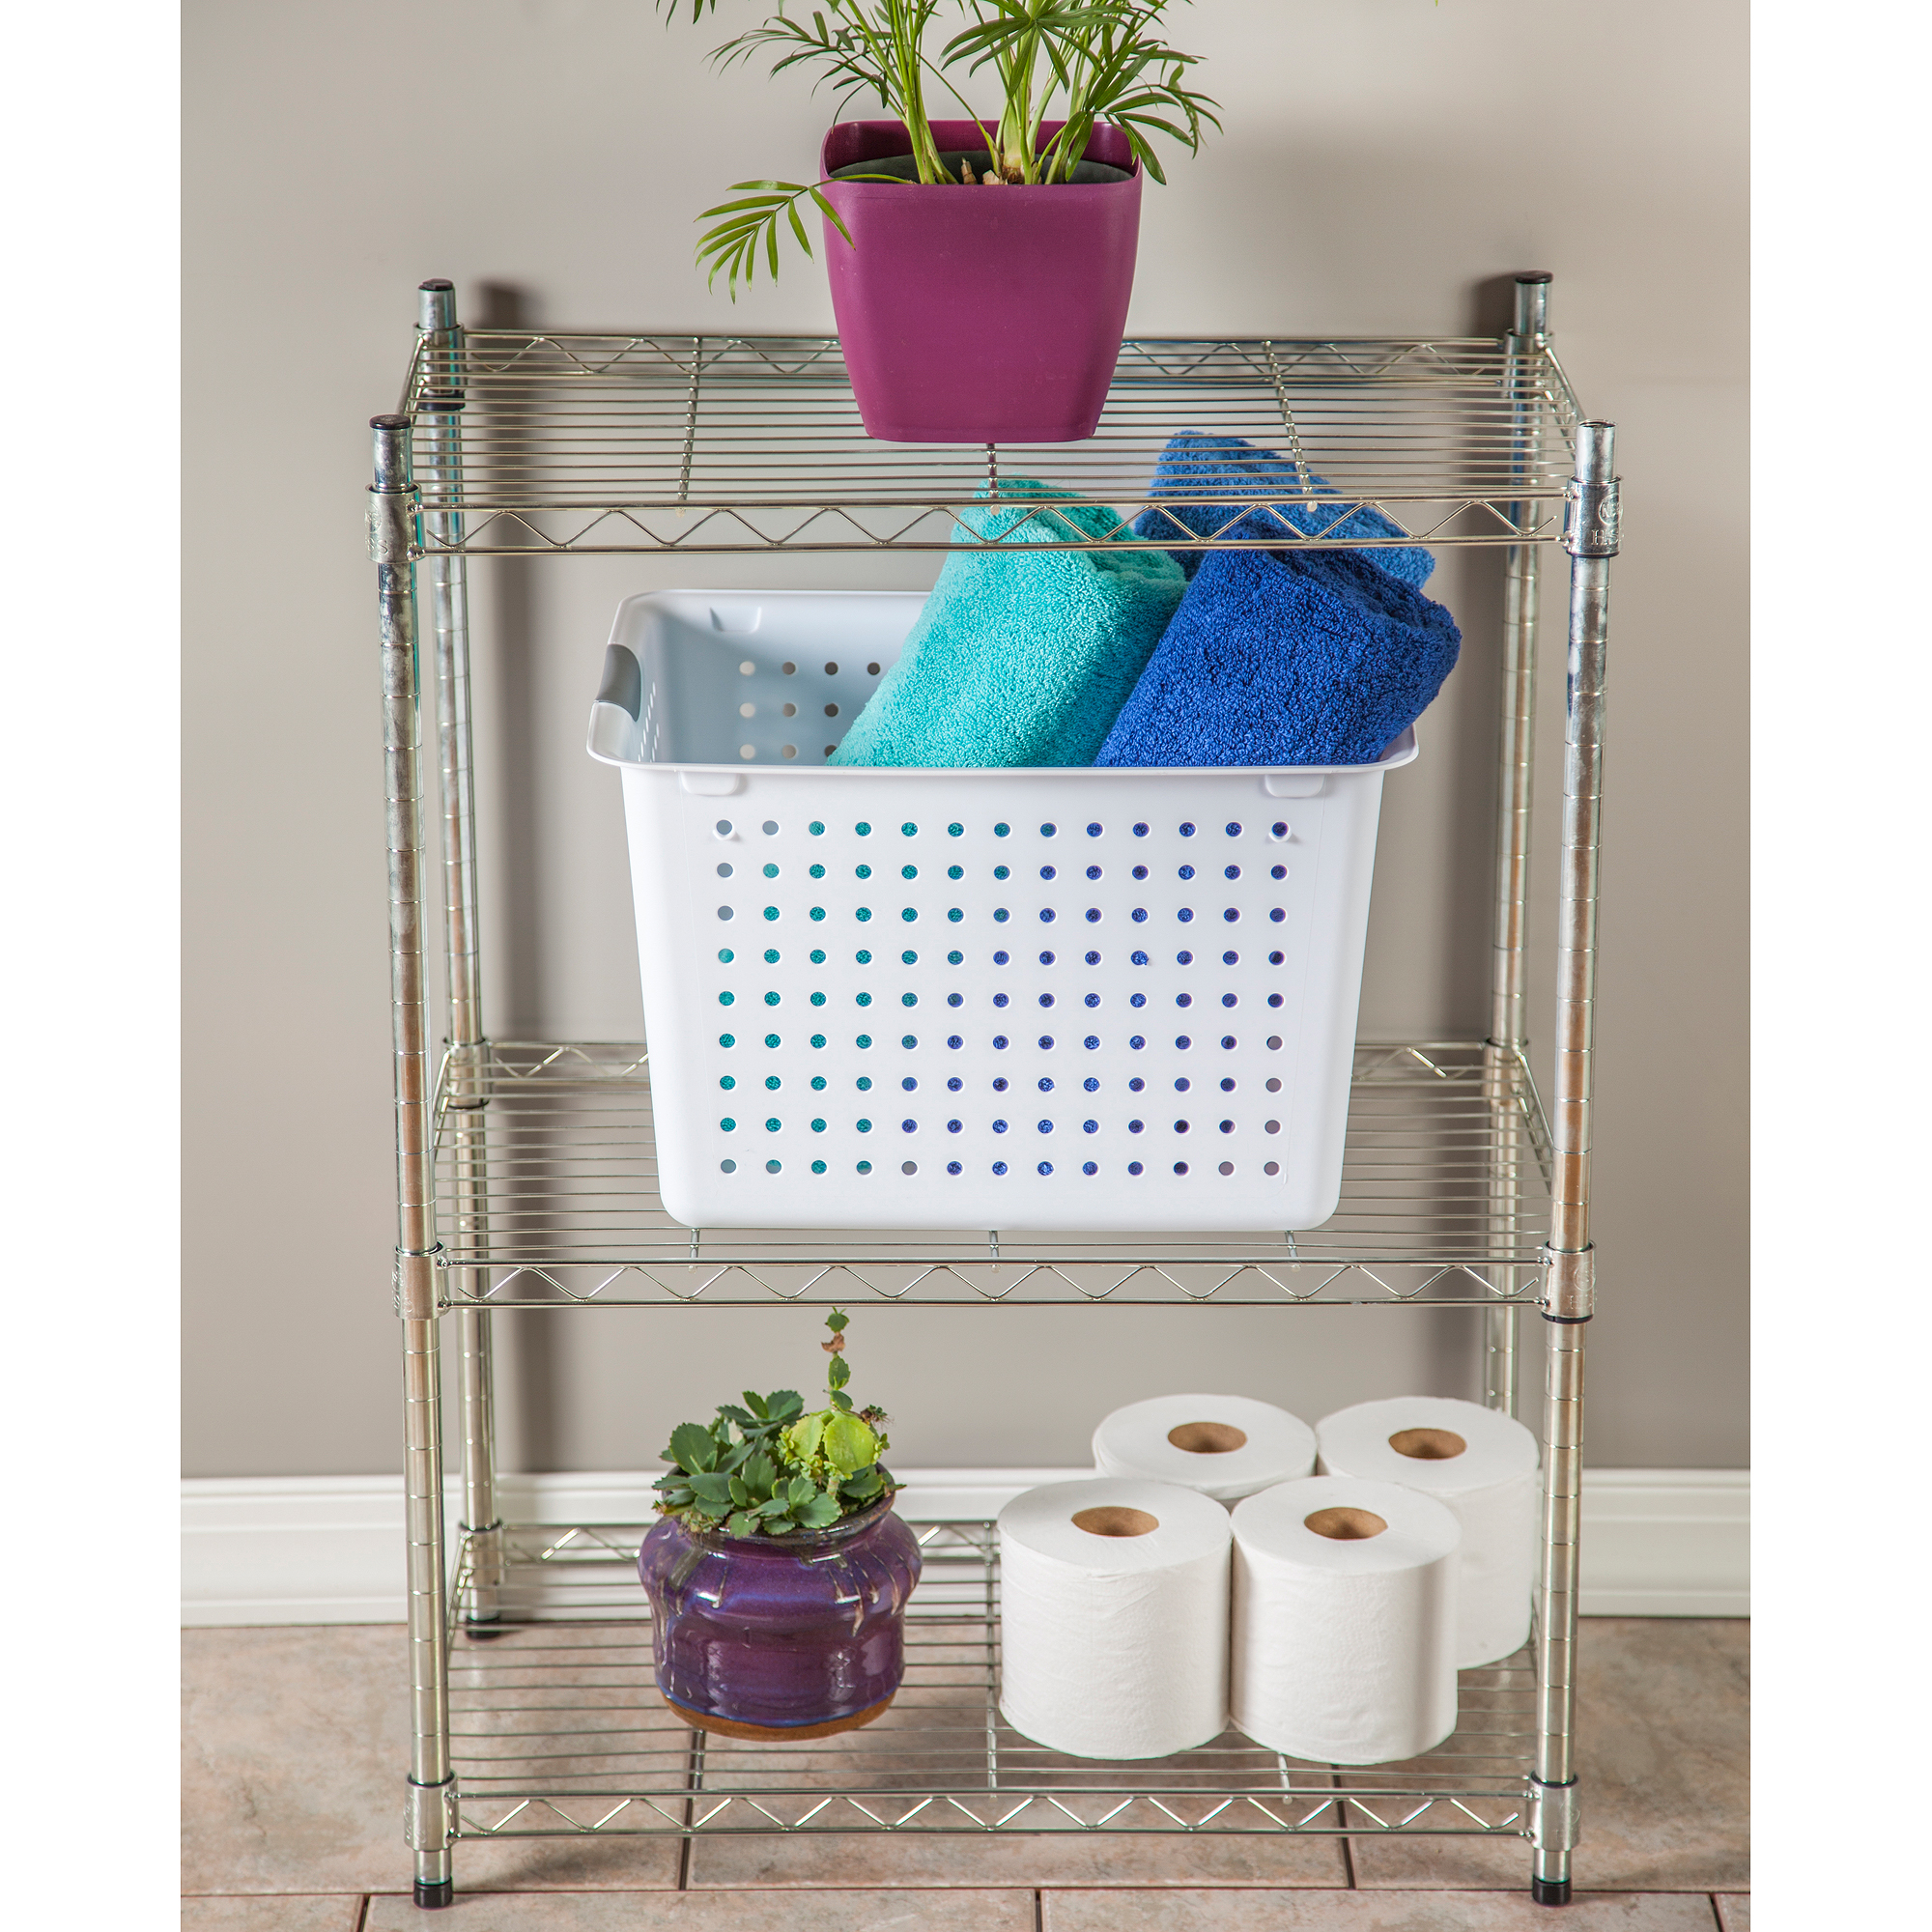 Sterilite Deep Ultra Basket- White, Set of 6